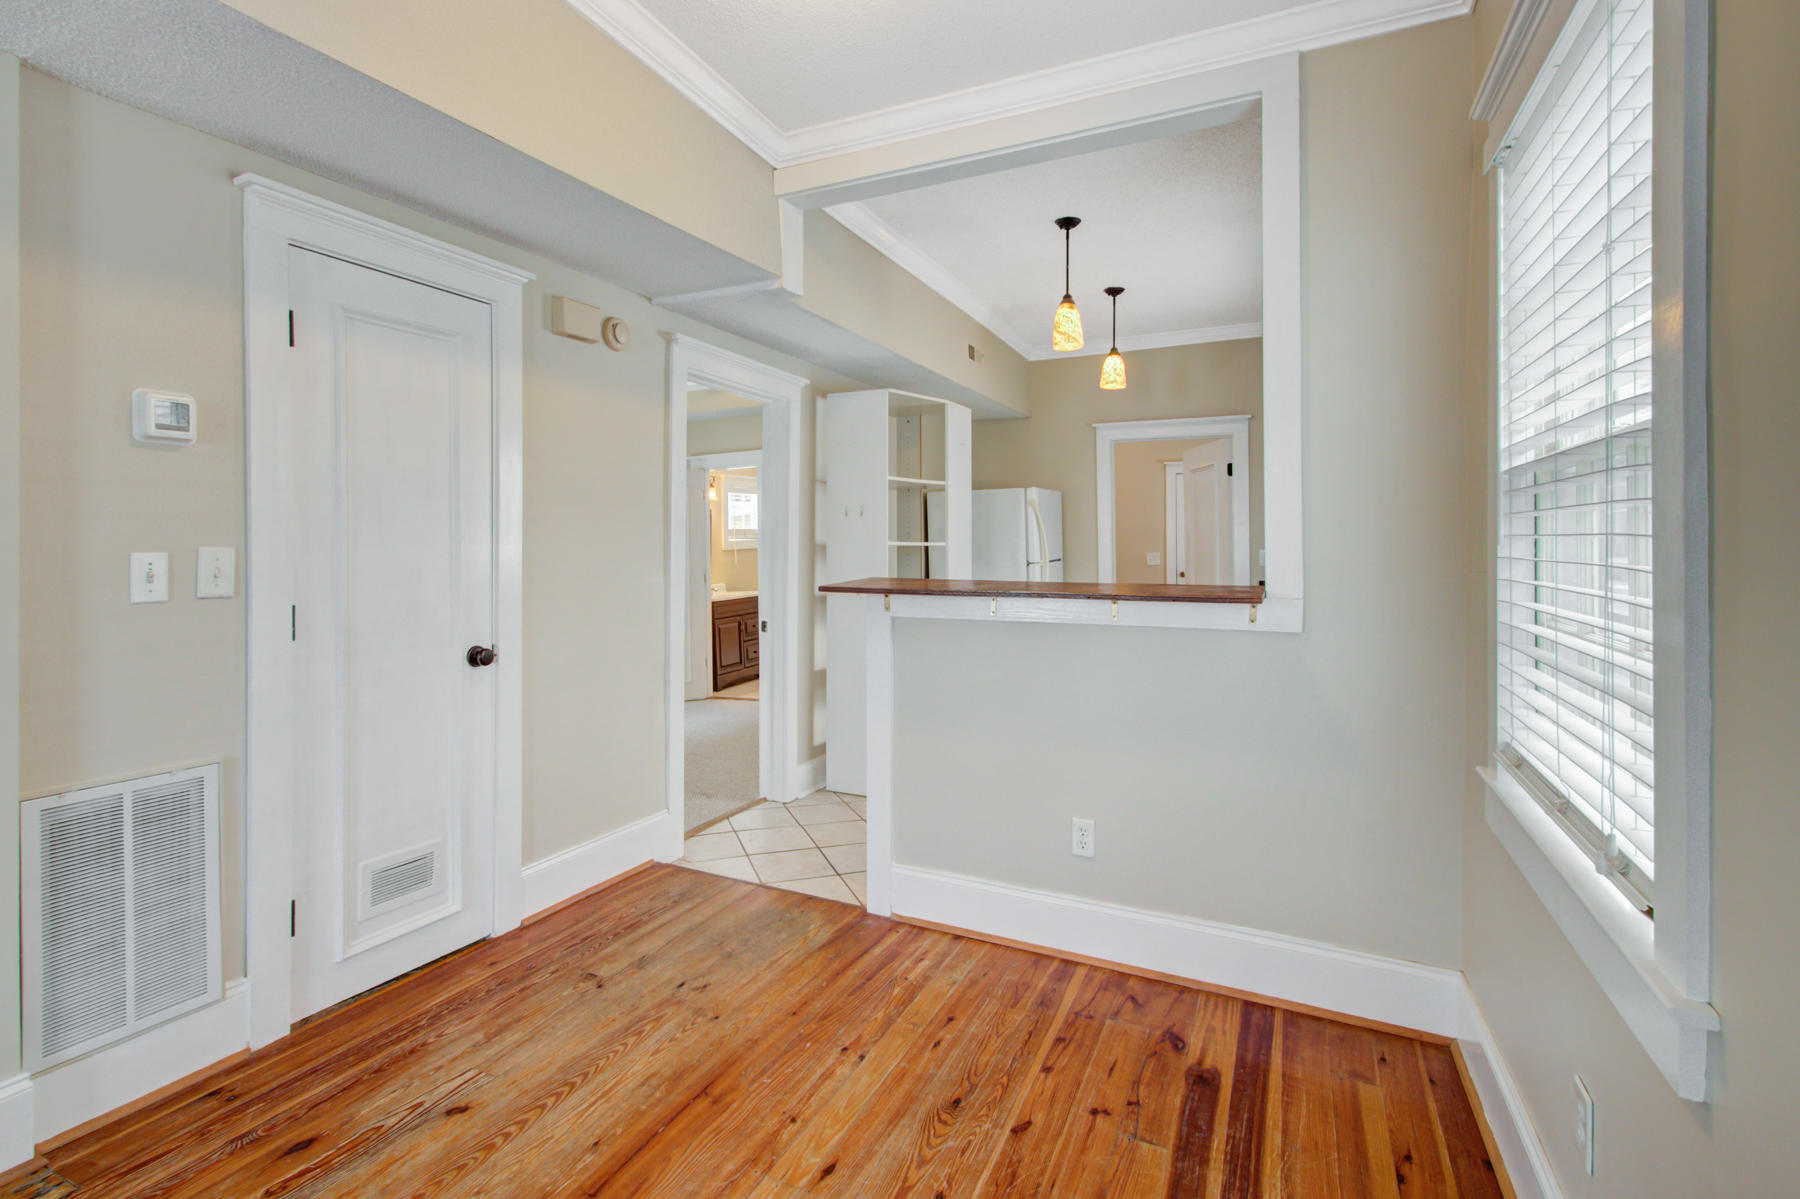 Elliotborough Condos For Sale - 3 Kracke, Charleston, SC - 2